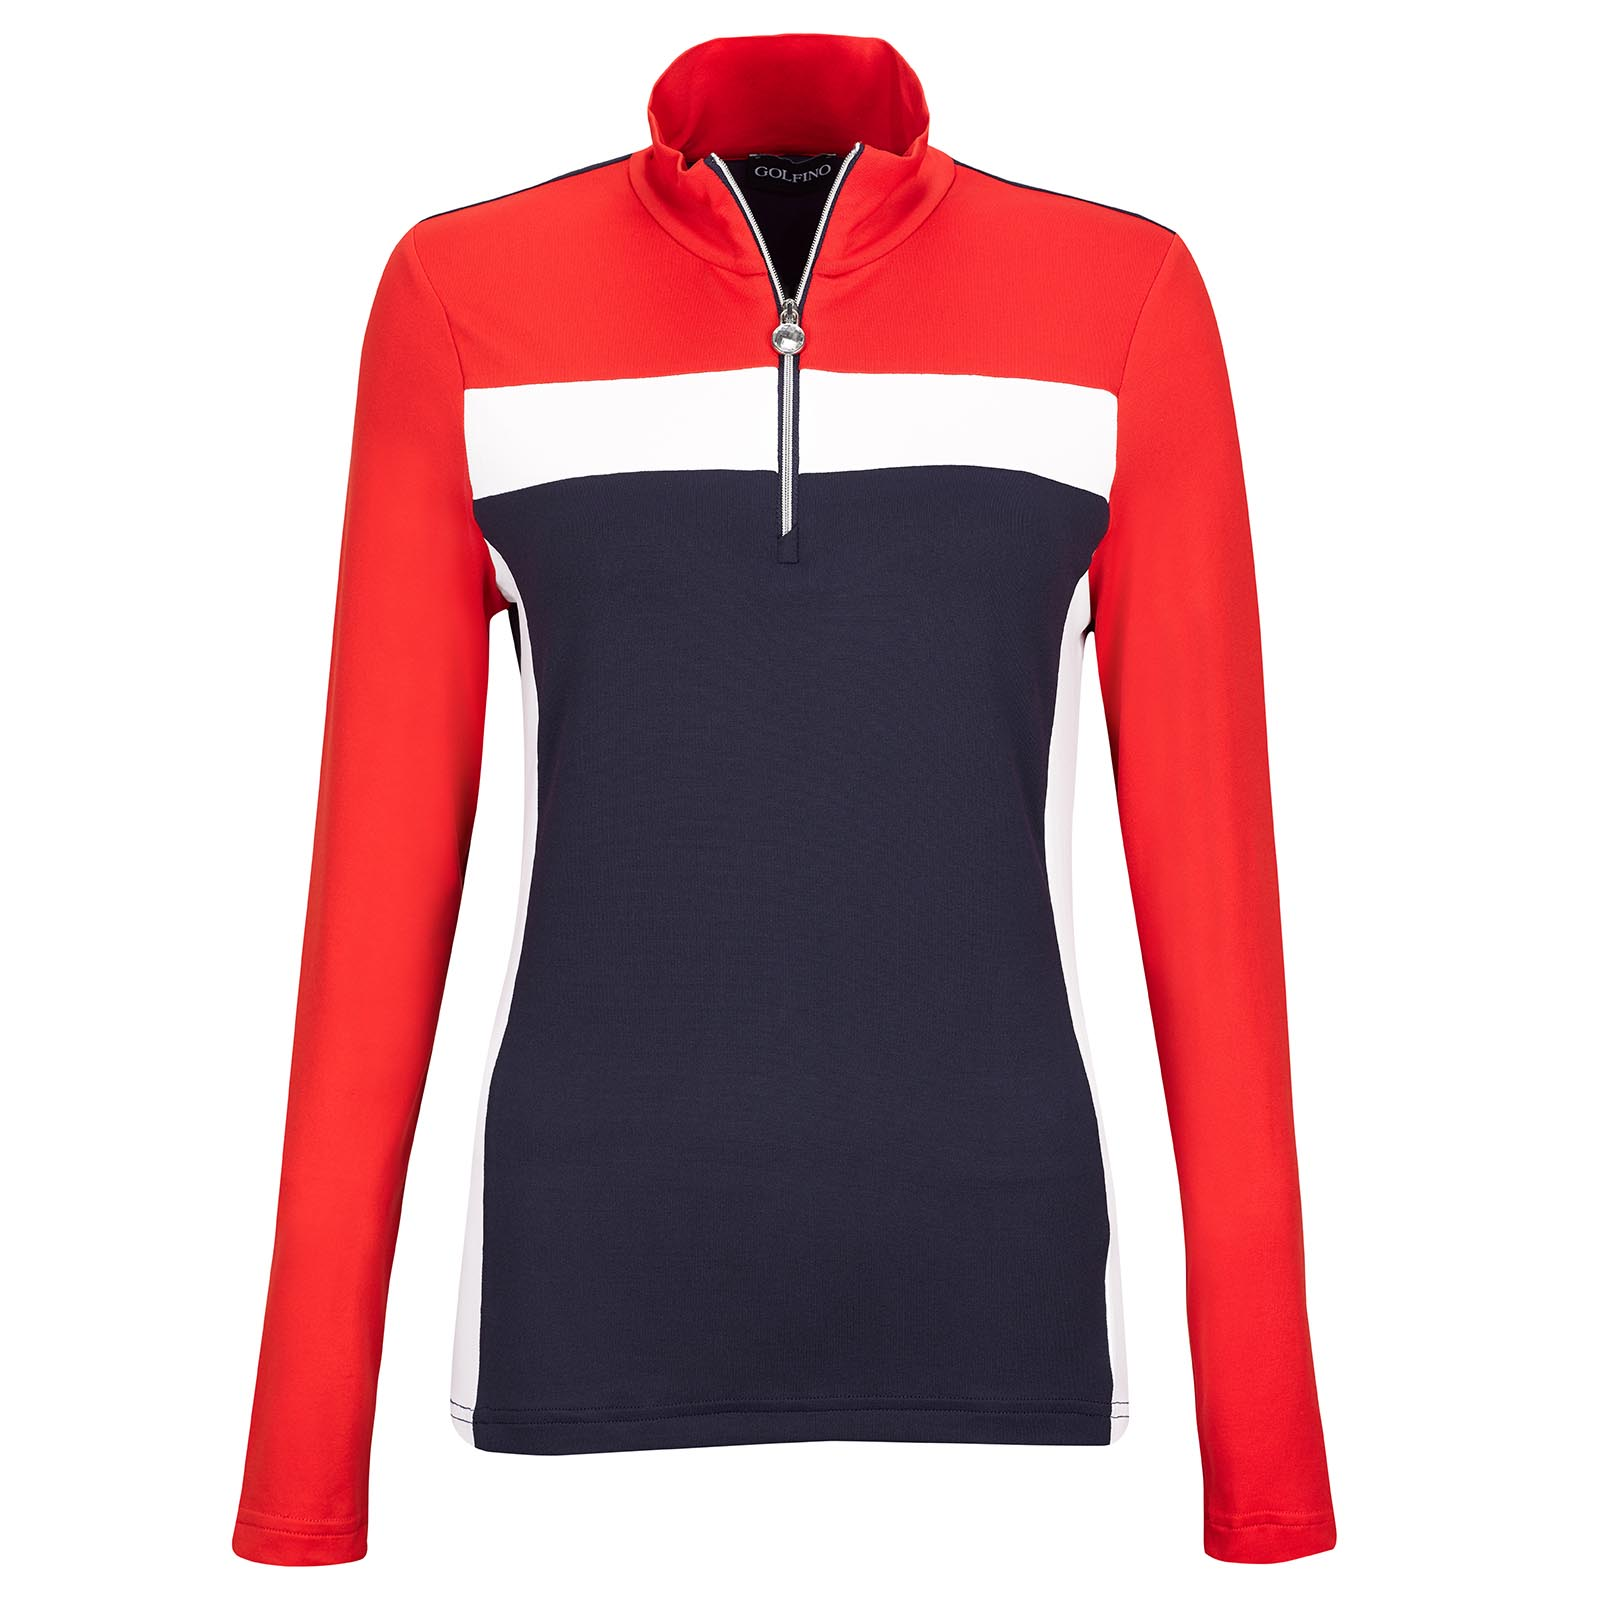 Ladies' long-sleeve functional golf troyer in Pro Look with Moisture Management